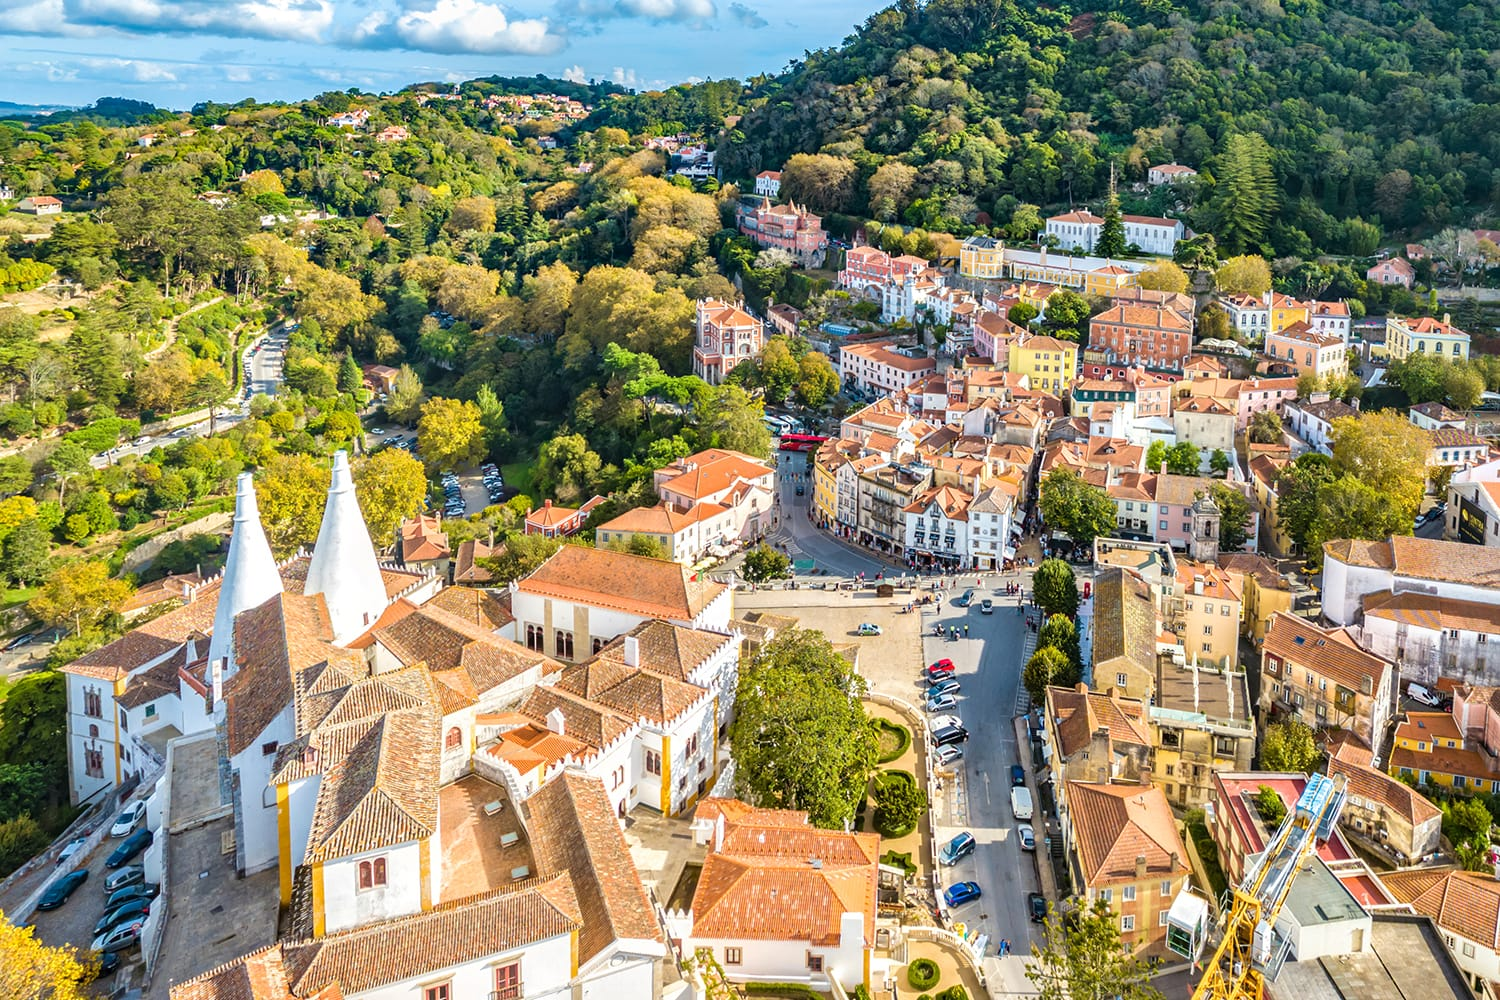 Aerial View of The Palace of Sintra, also called Sintra National Palace, in the Town of Sintra, Portugal